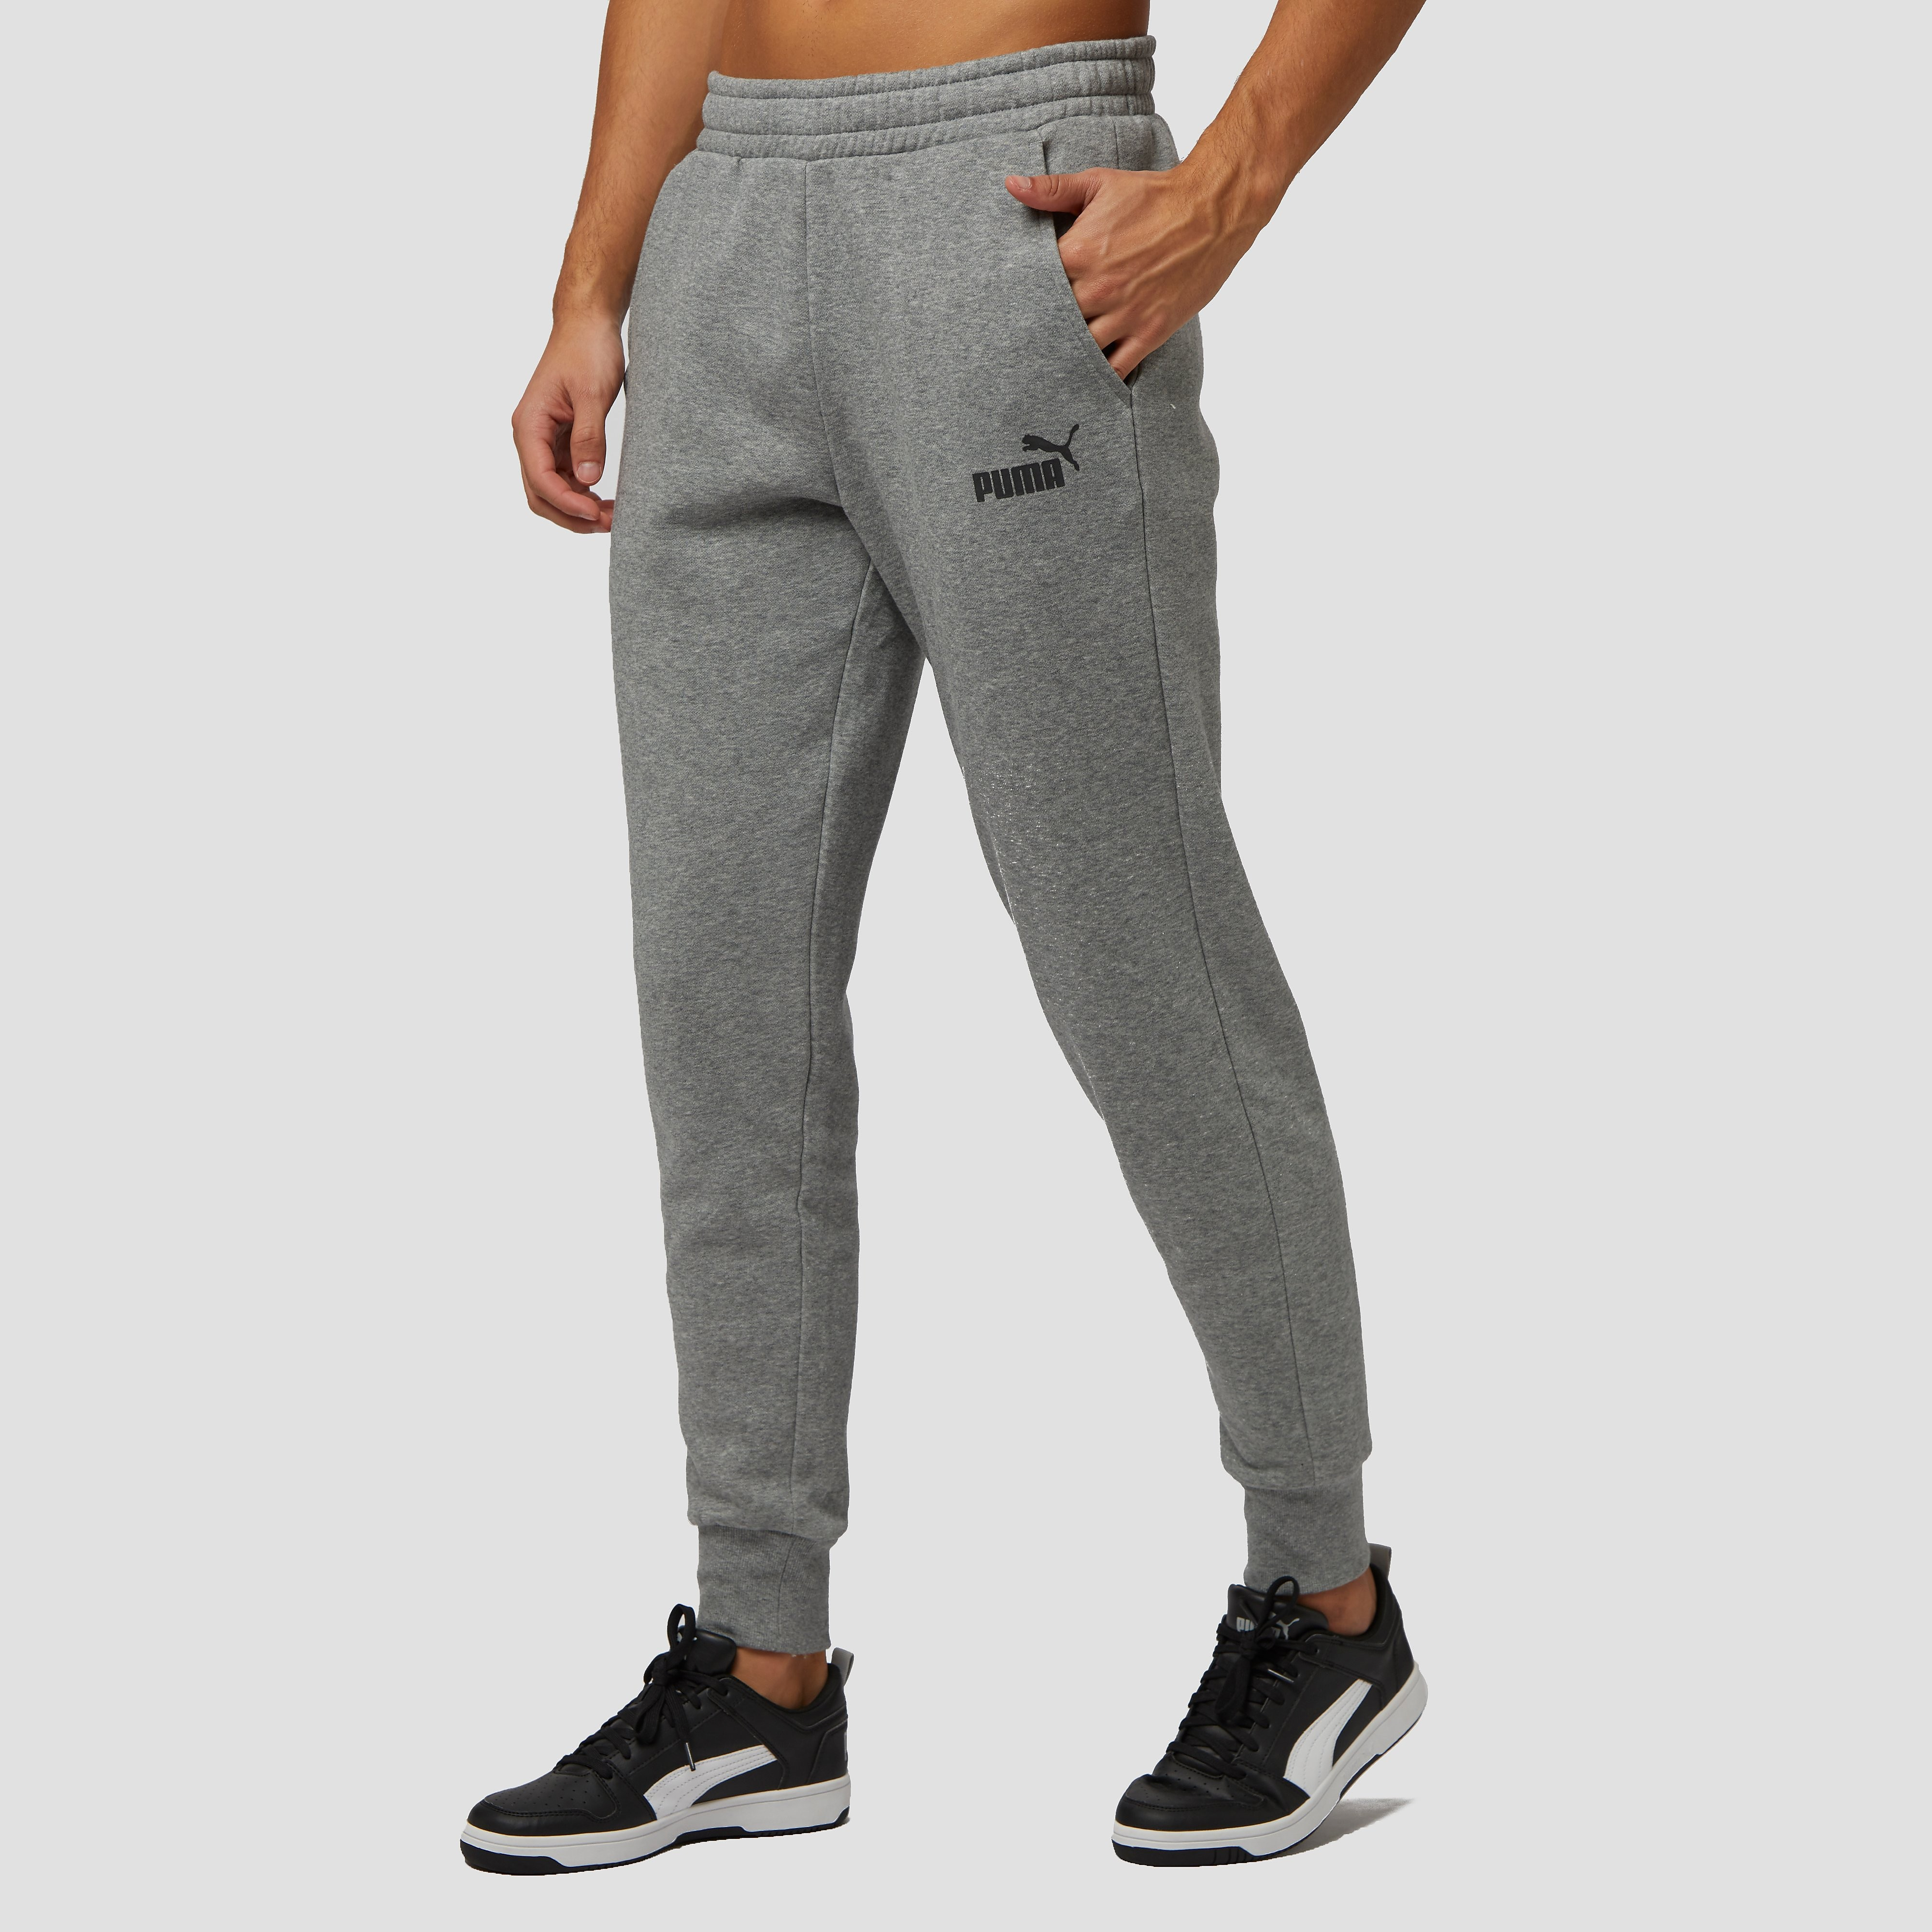 PUMA No. 1 logo joggingbroek grijs heren Heren